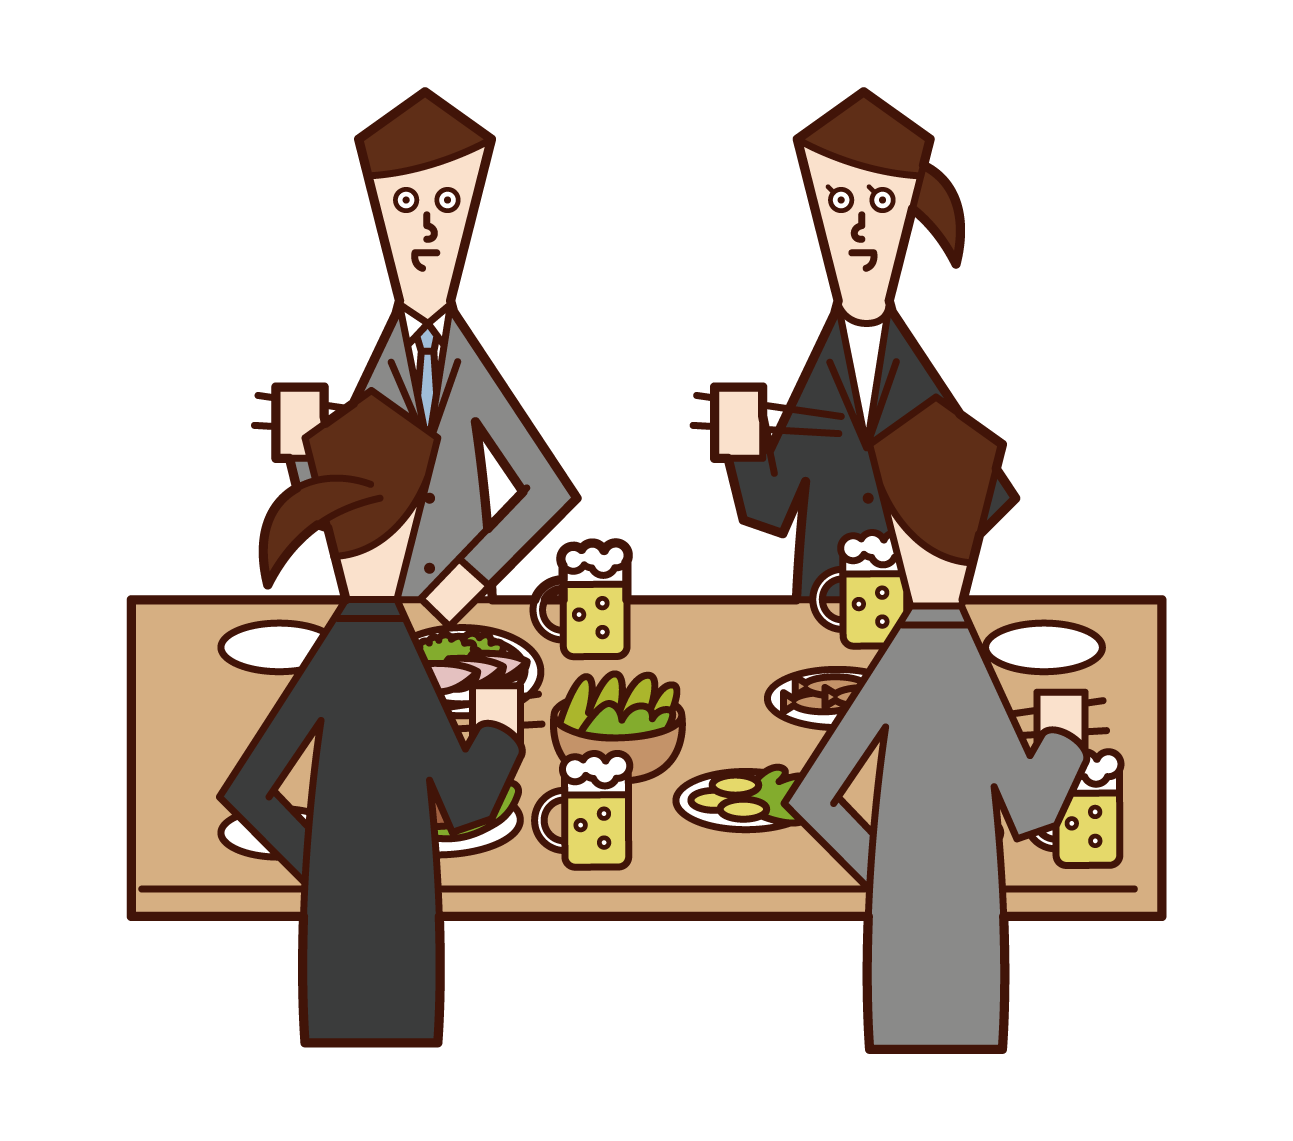 Illustration of people (men and women) enjoying a meal at a drinking party